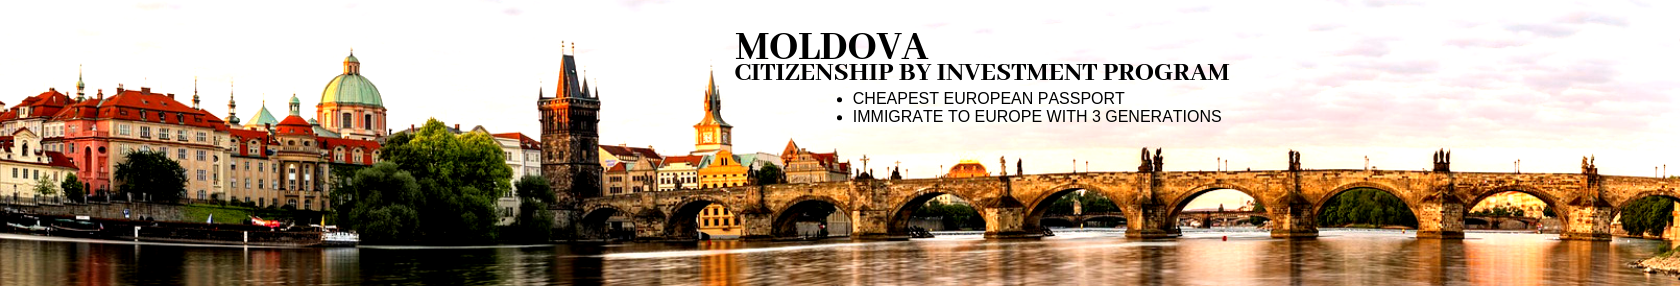 Moldova, Citizenship by Investment